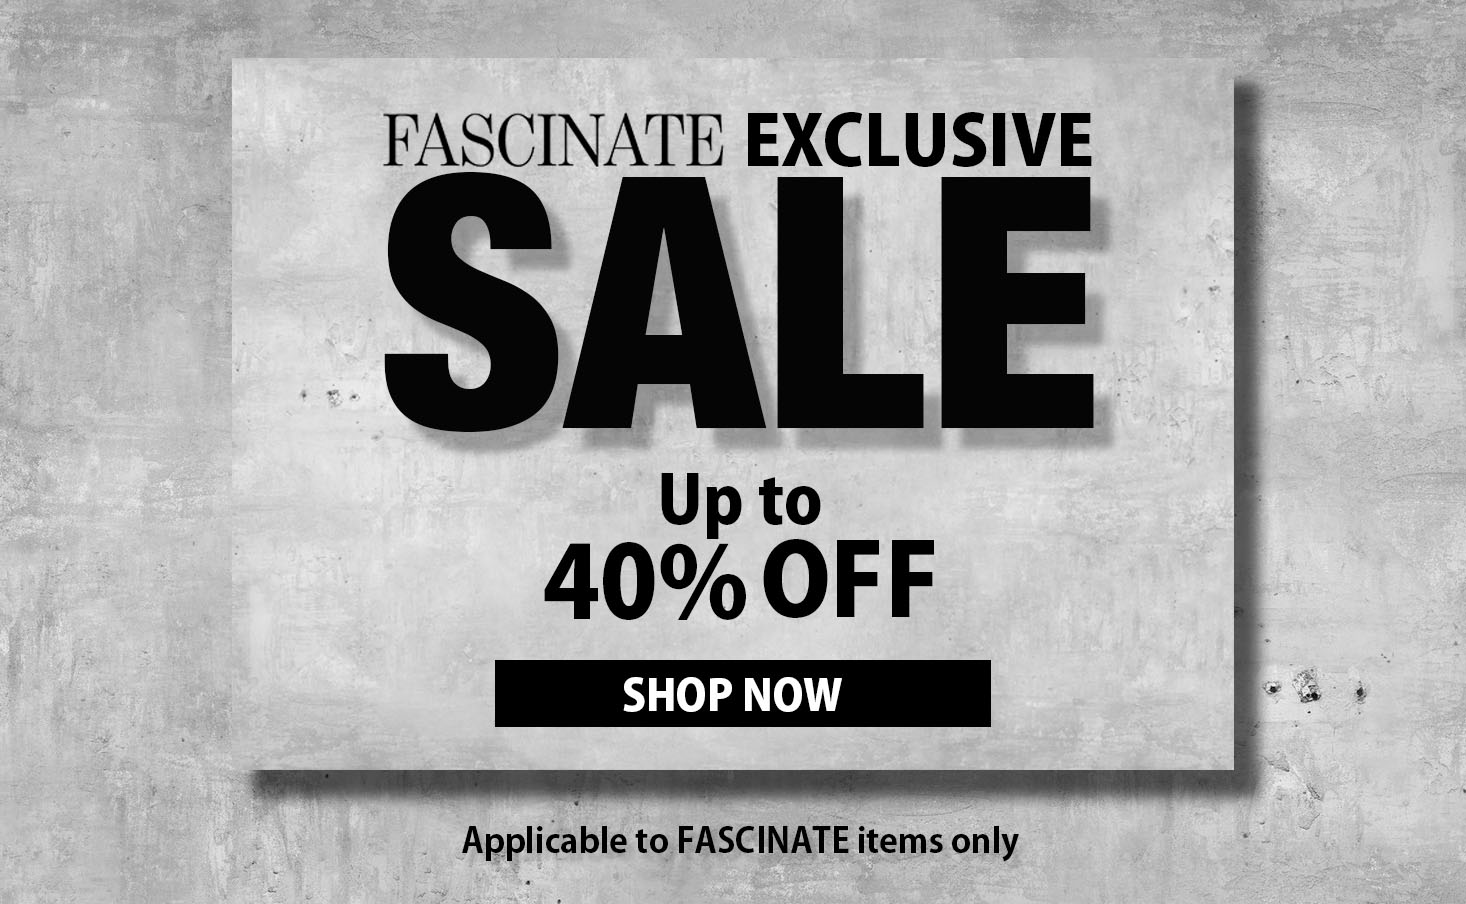 FASCINATE SALE